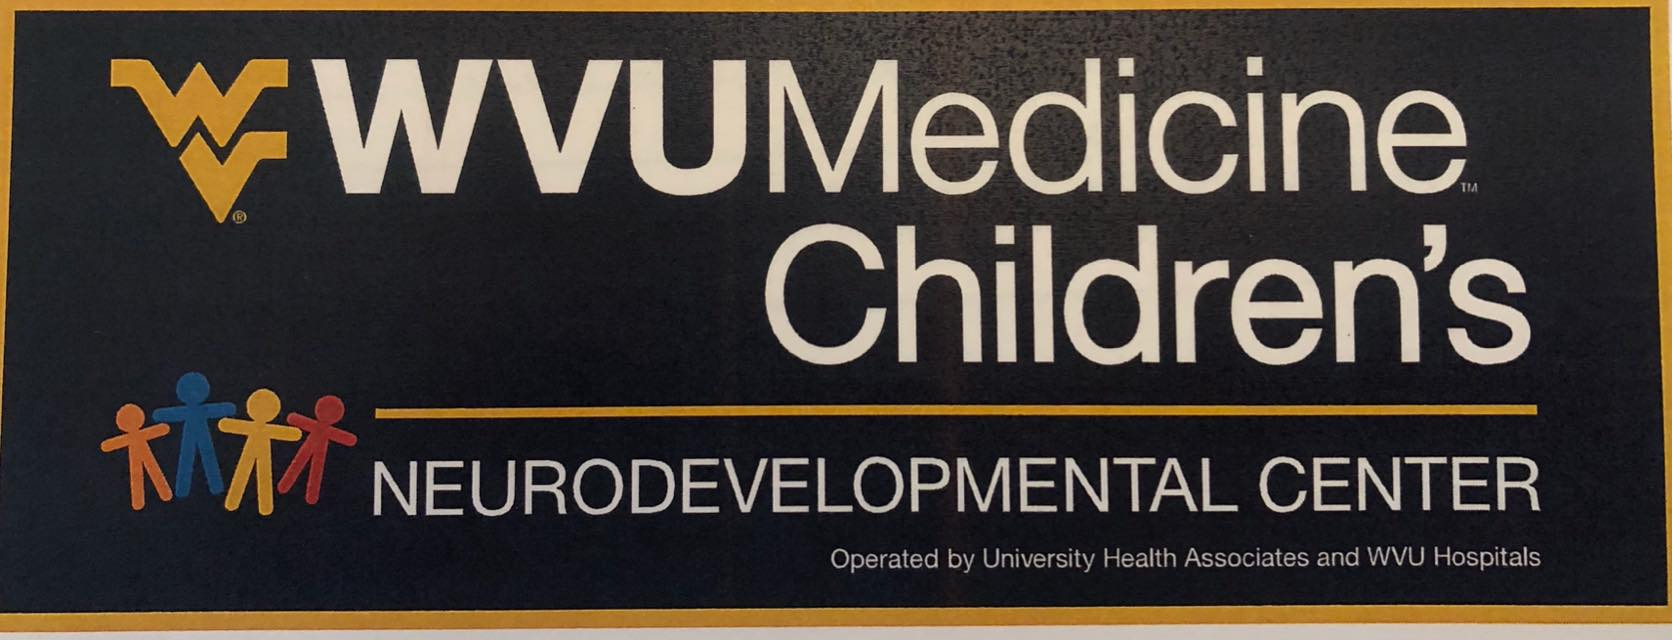 WVU Medicine Children's Neurodevelopmental Center